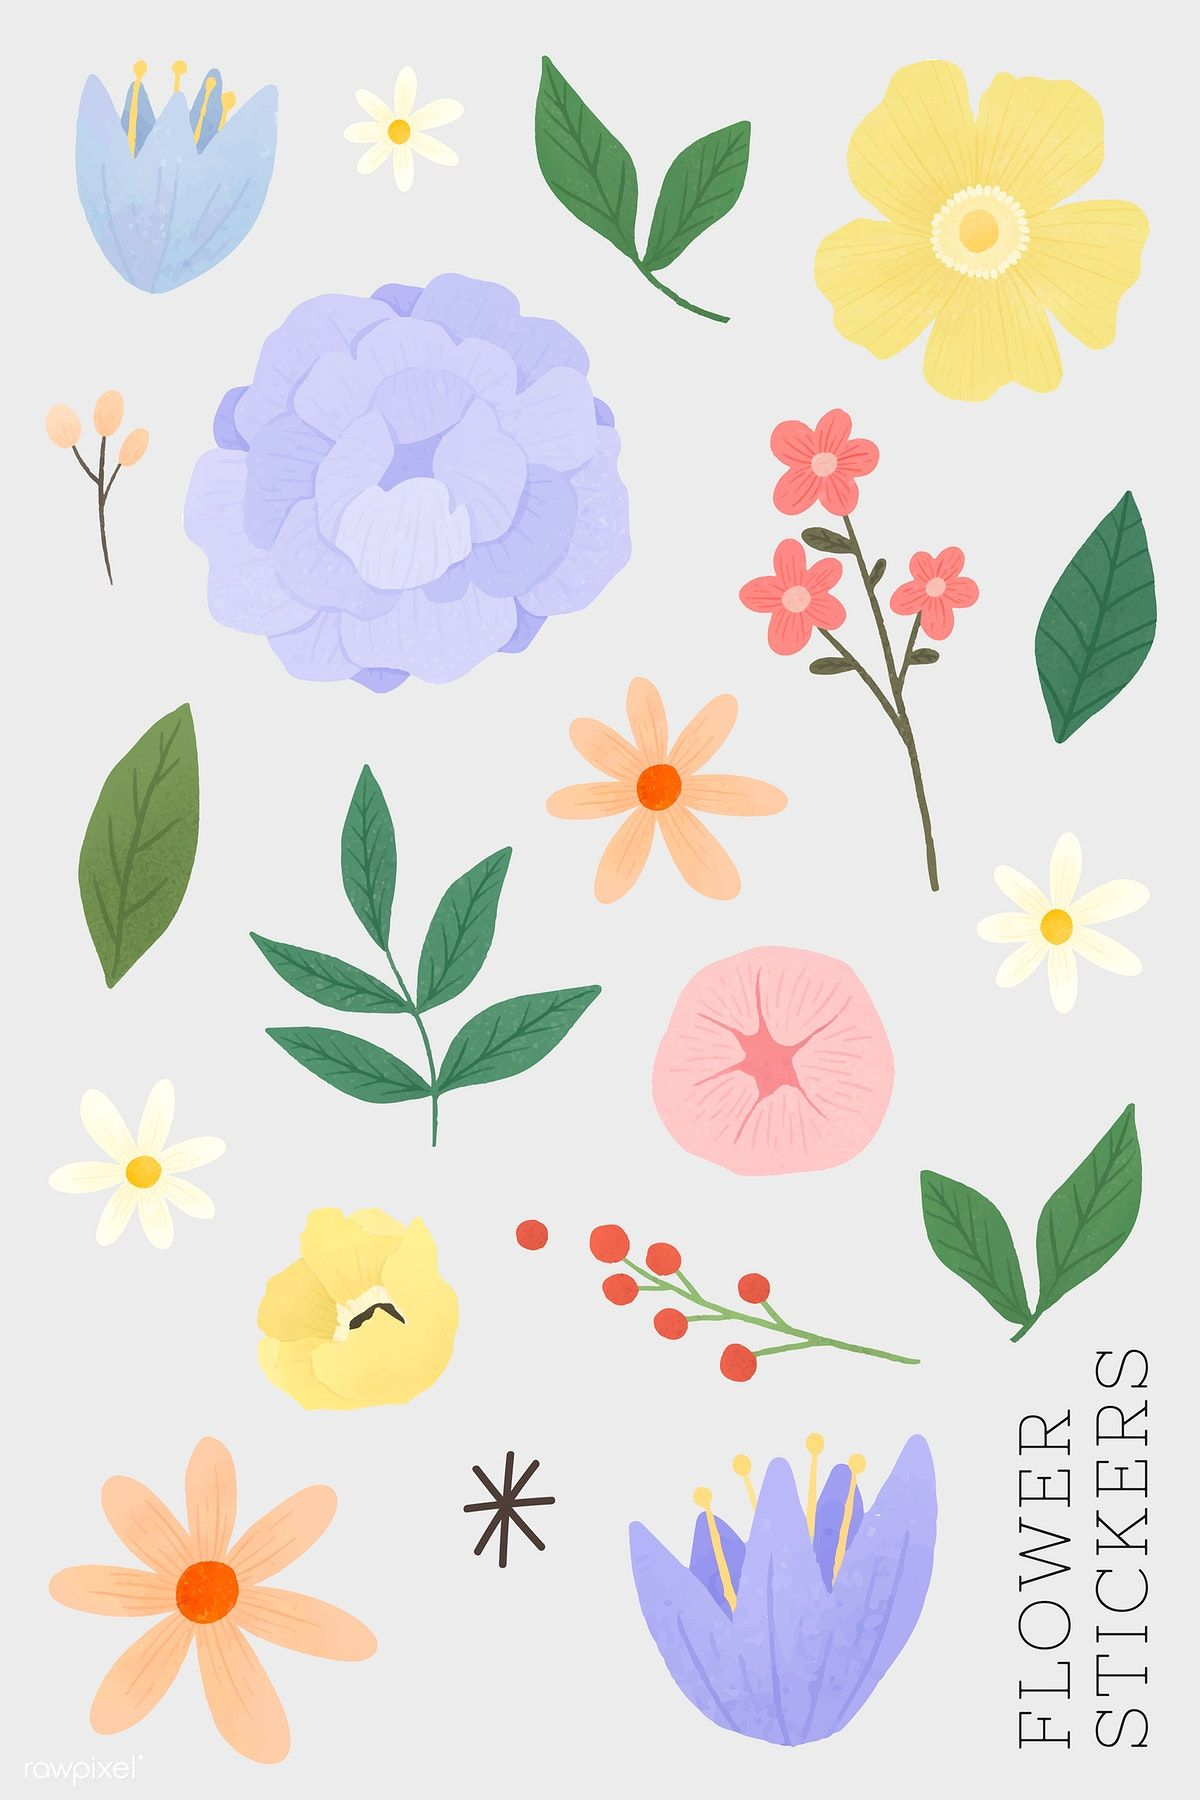 Download premium vector of Flower and leaf stickers set vector ...